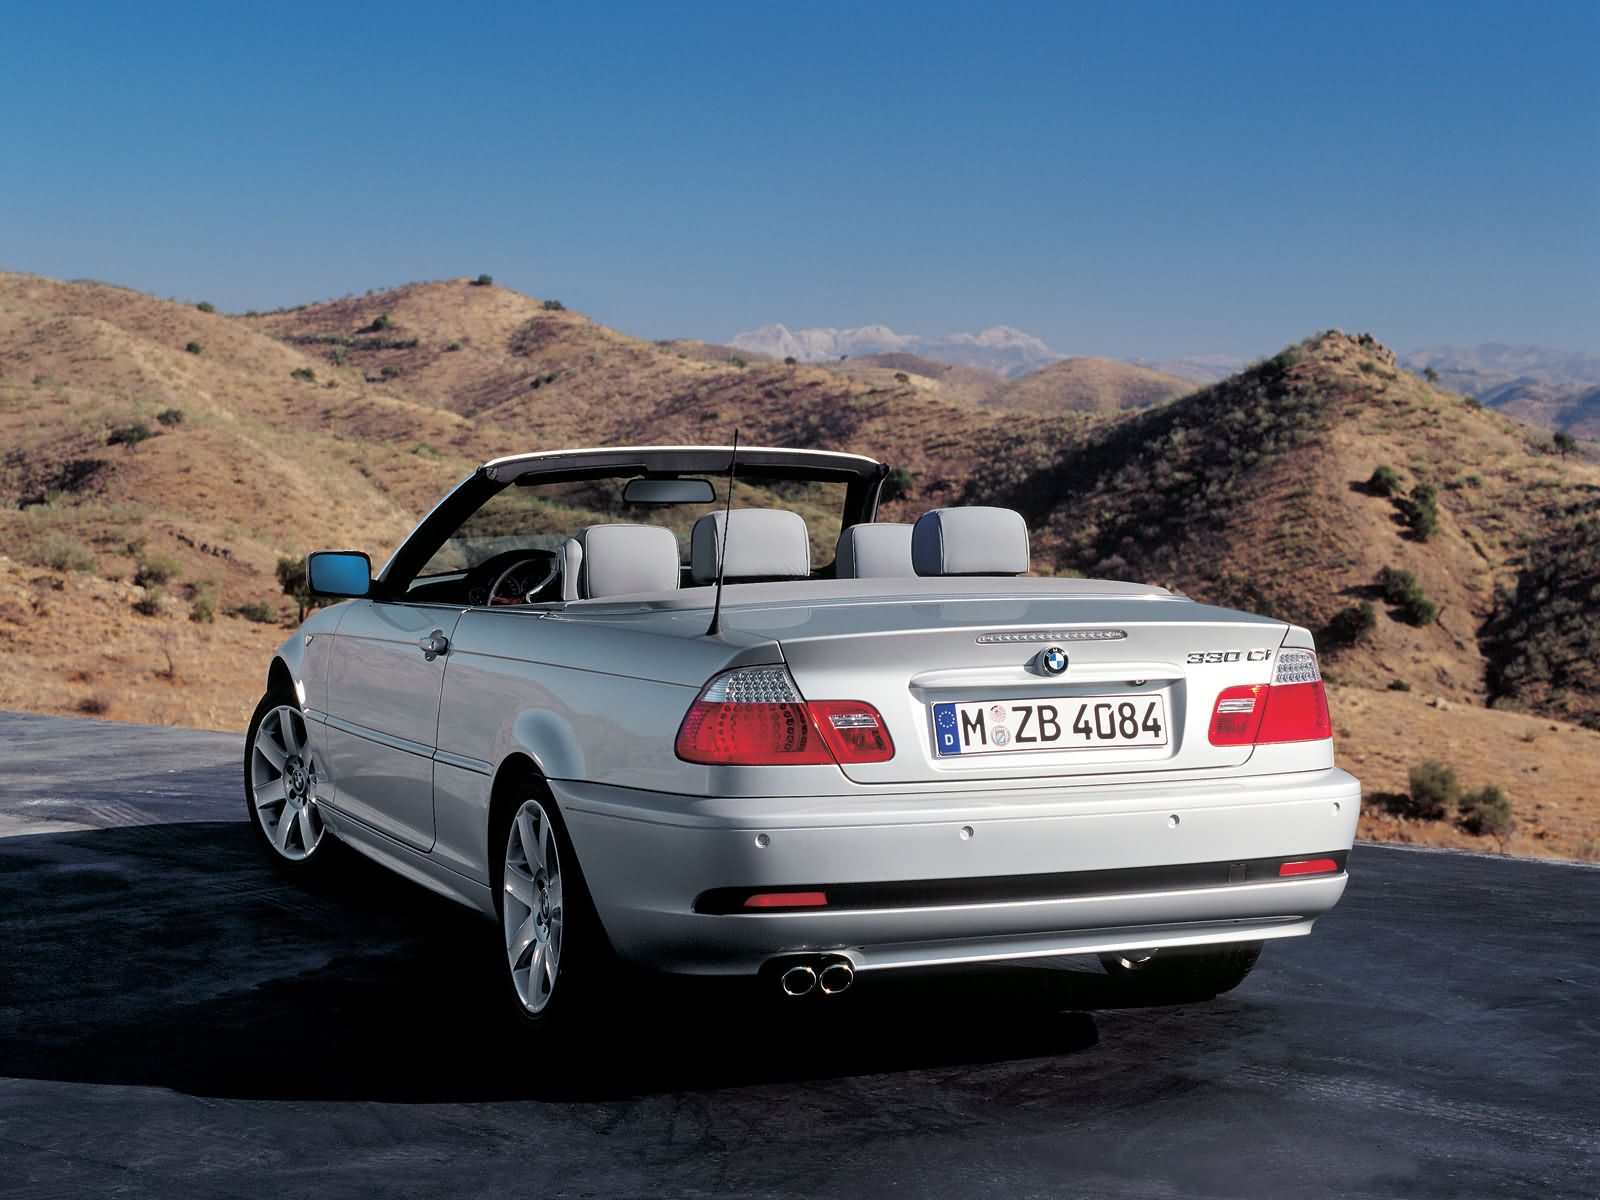 bmw 3 series e46 convertible picture 15834 bmw photo gallery. Black Bedroom Furniture Sets. Home Design Ideas